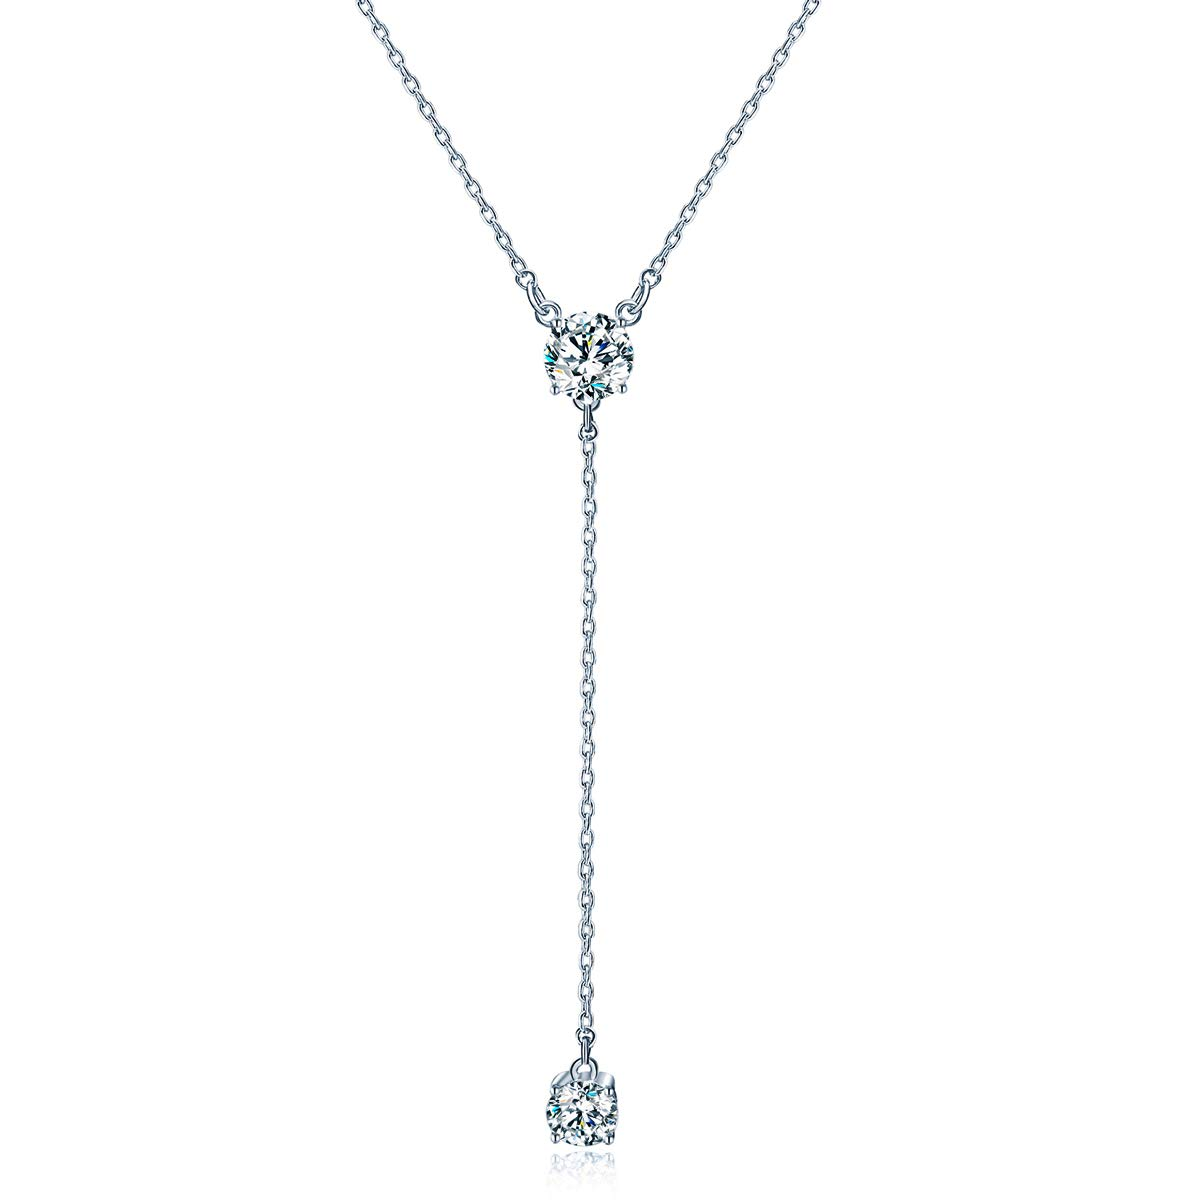 GAEA H Y Necklace Sterling Silver, Long Tassel Simple Crystal with Swarovski Clavicle Women's Necklaces by GAEA H